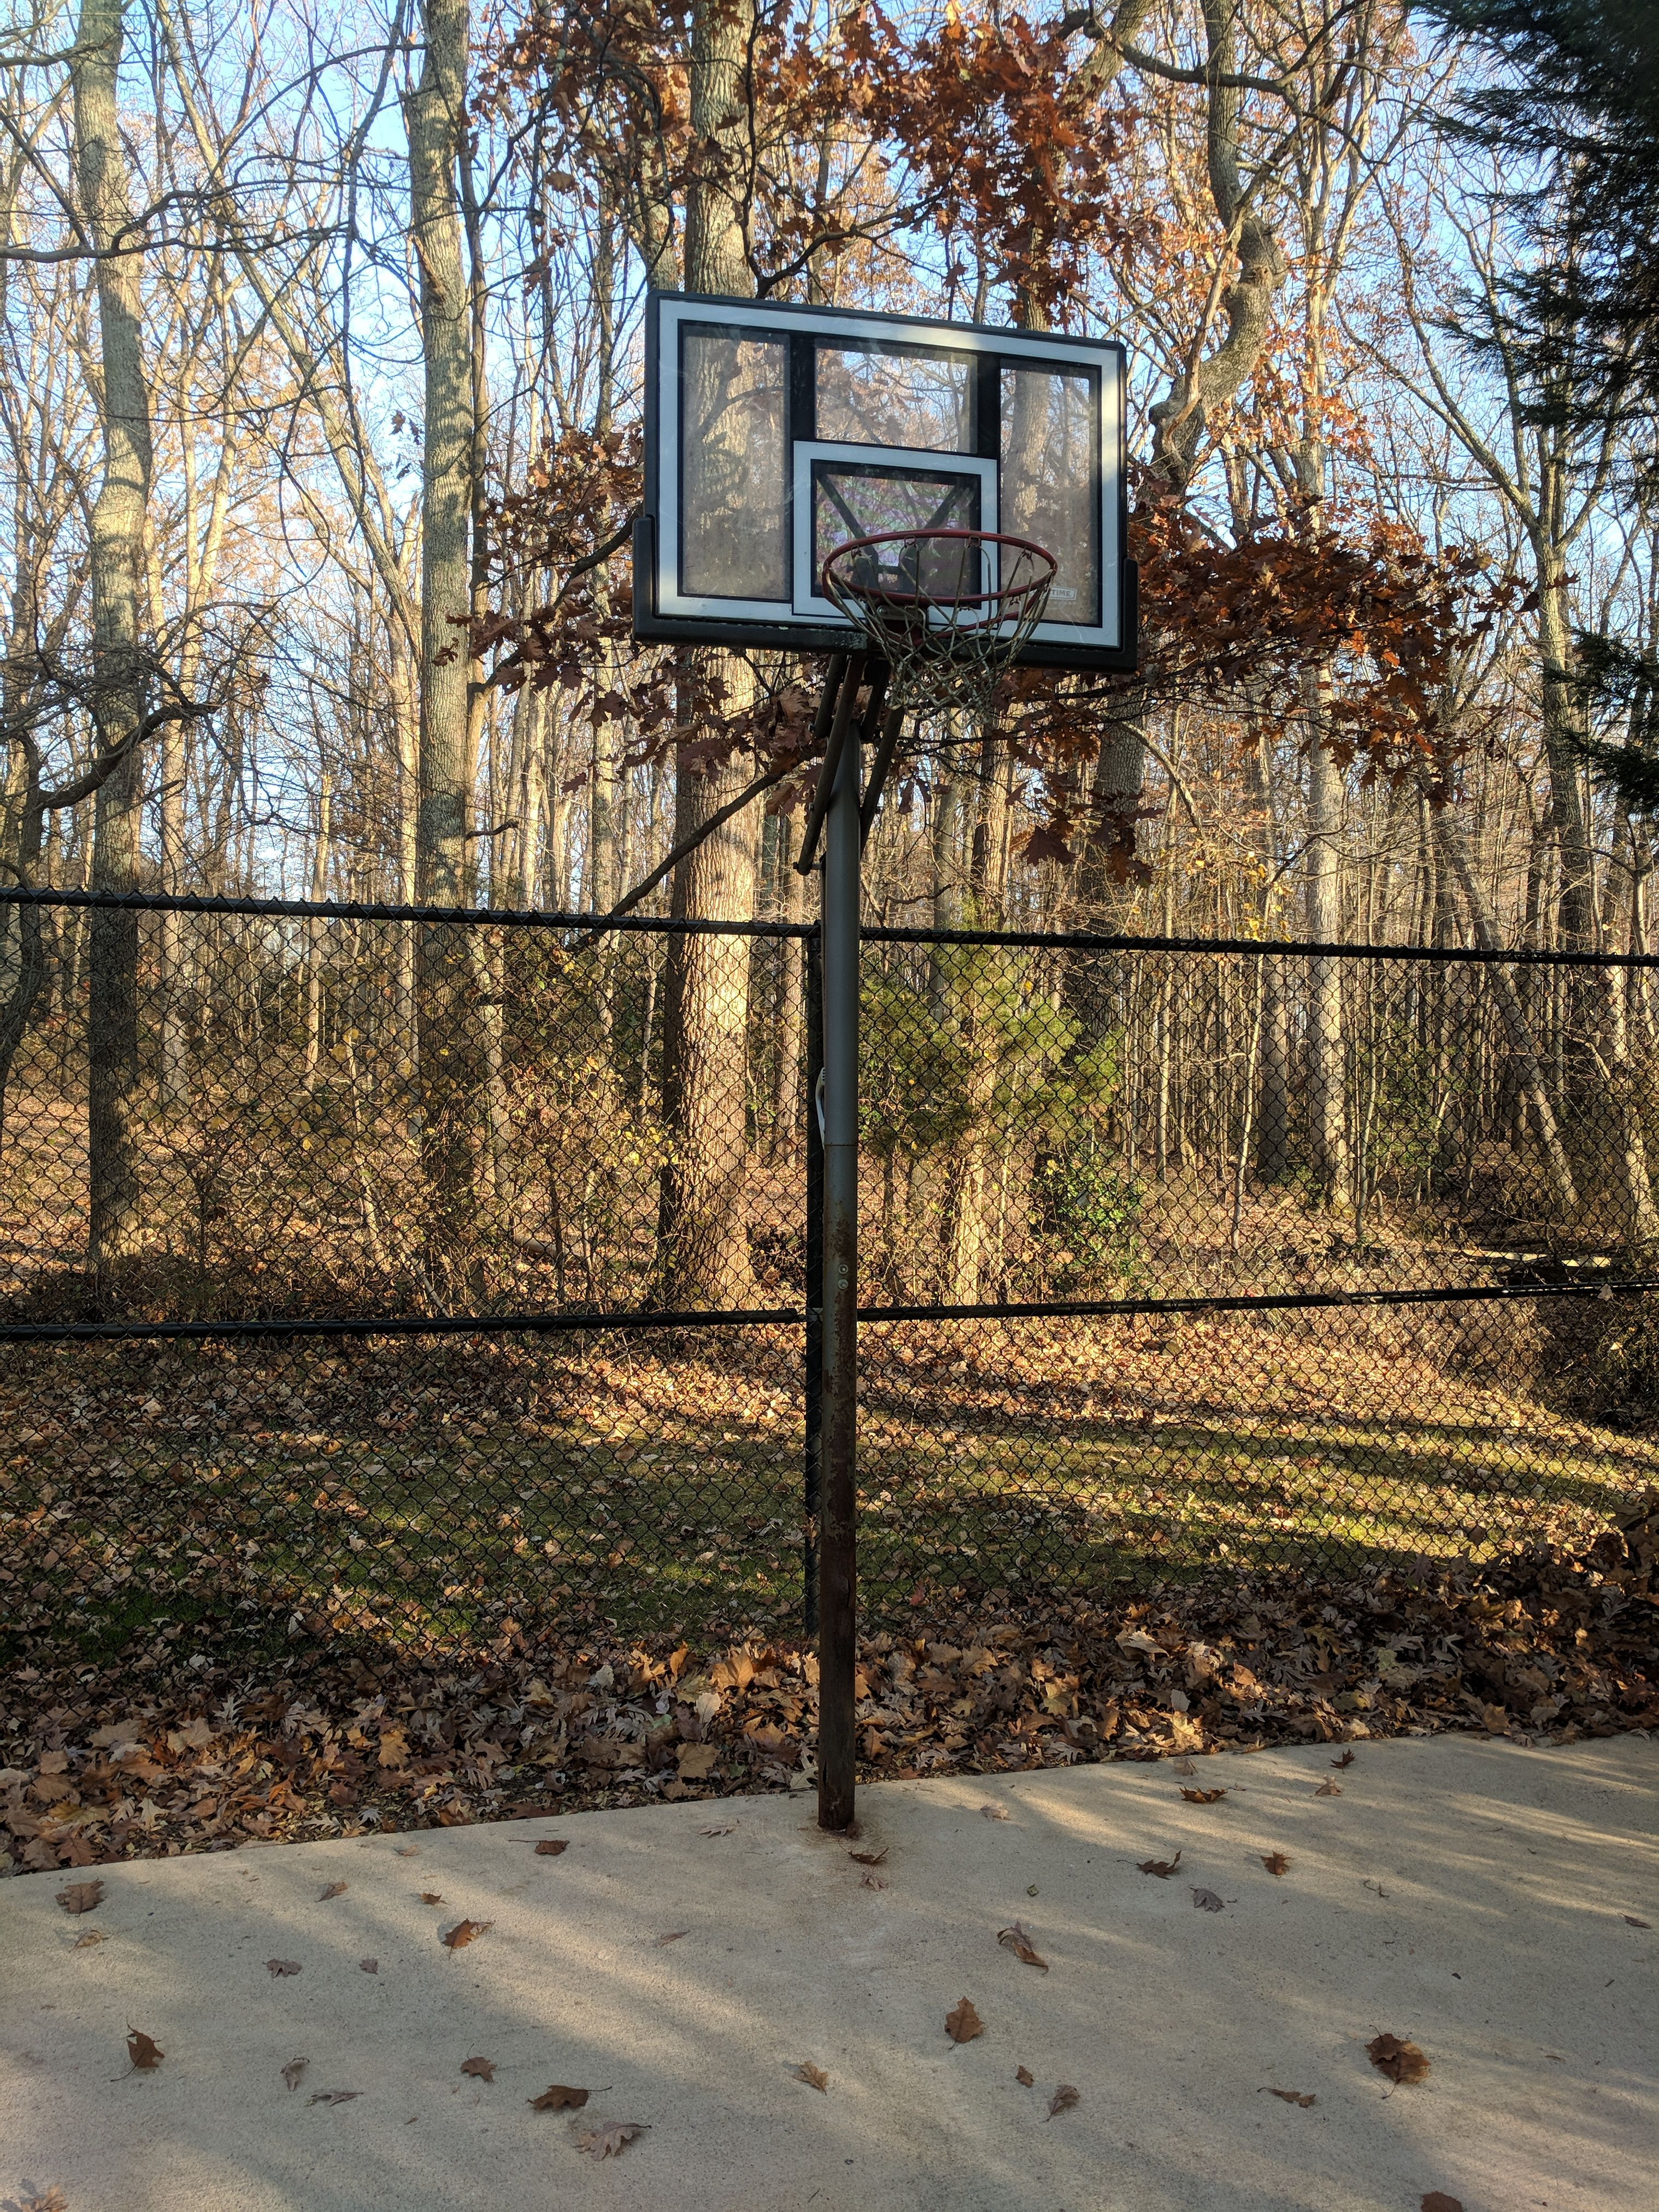 Basketball Hoop Assemblers Call 240 764 6143 In Brandywine By Furniture Assembly Experts In 2021 Lifetime Basketball Hoop Basketball Hoop Spalding Basketball Hoop